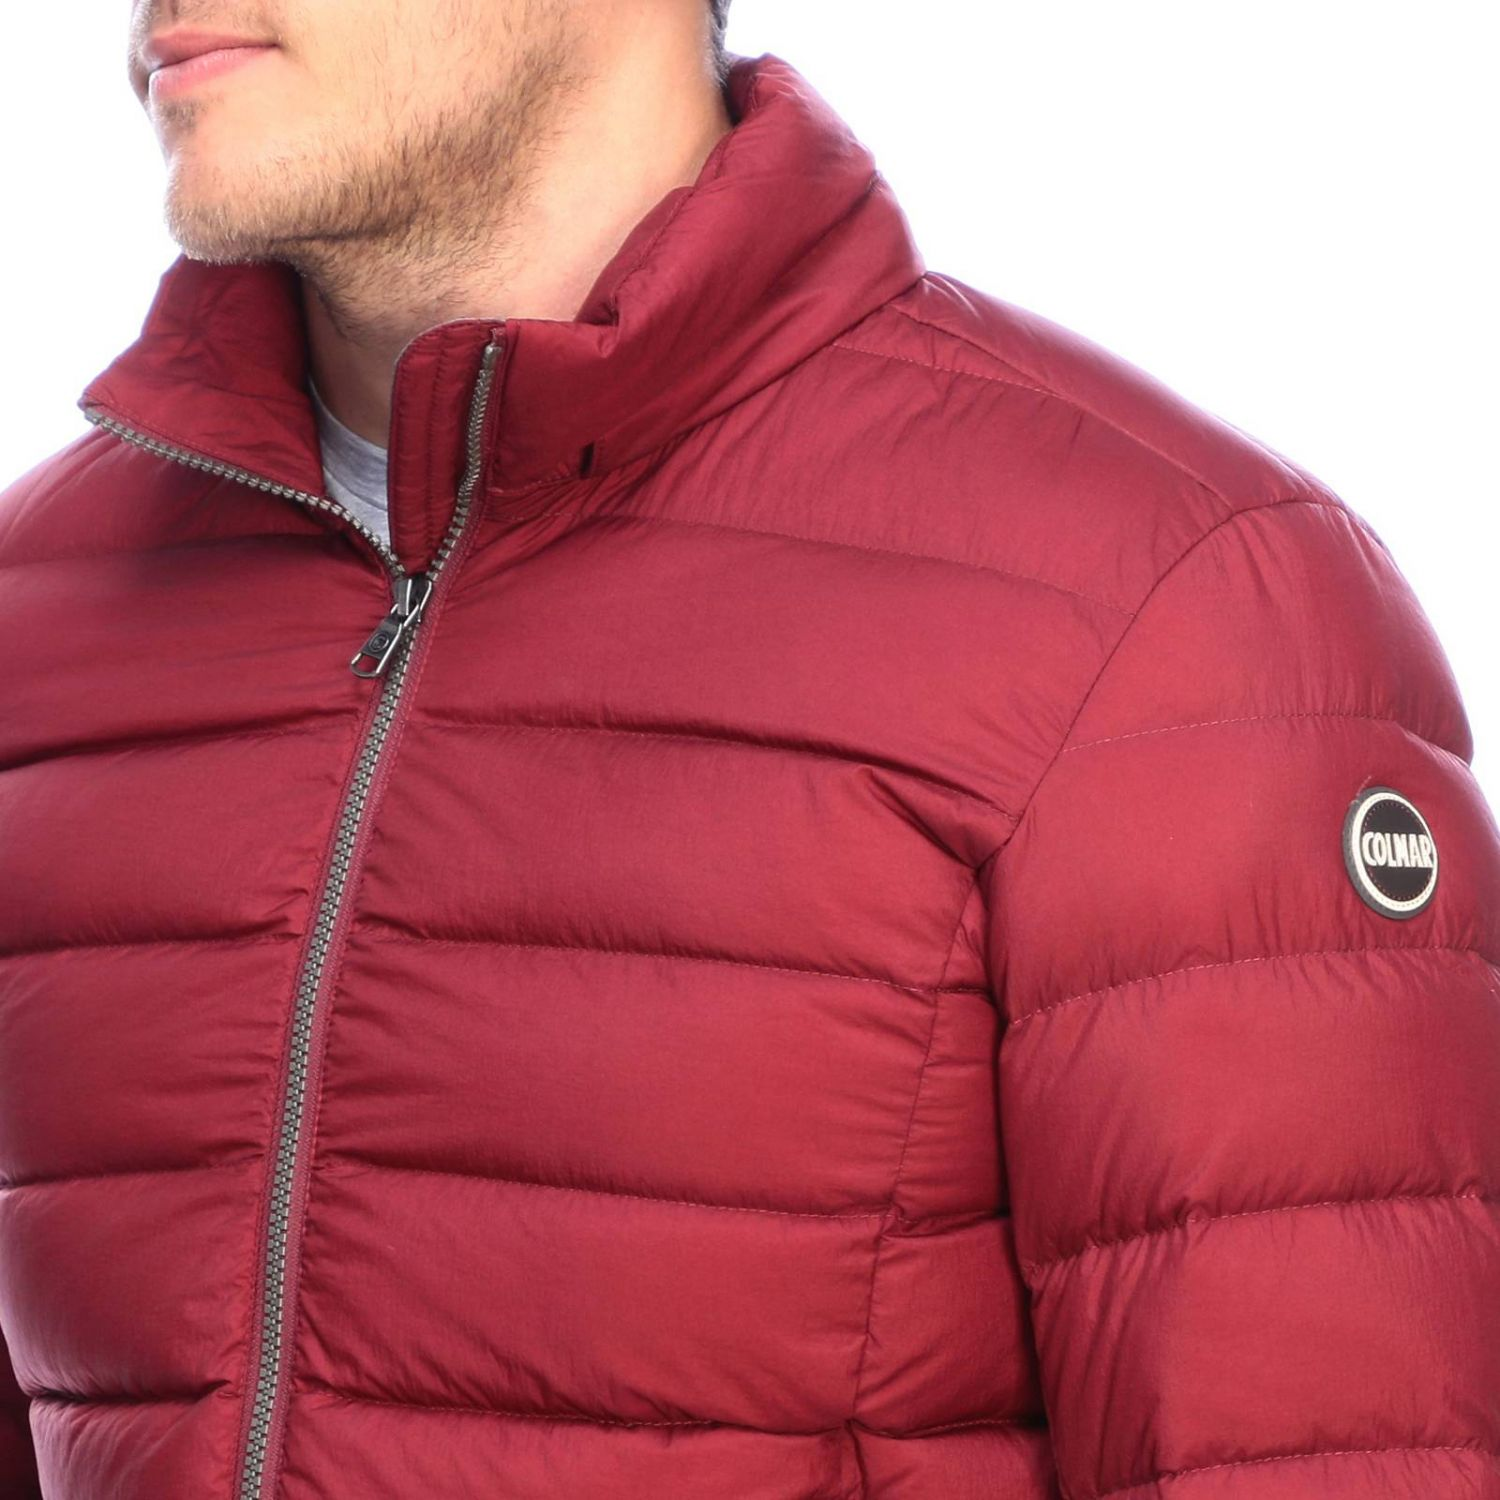 Jacket men Colmar burgundy 5